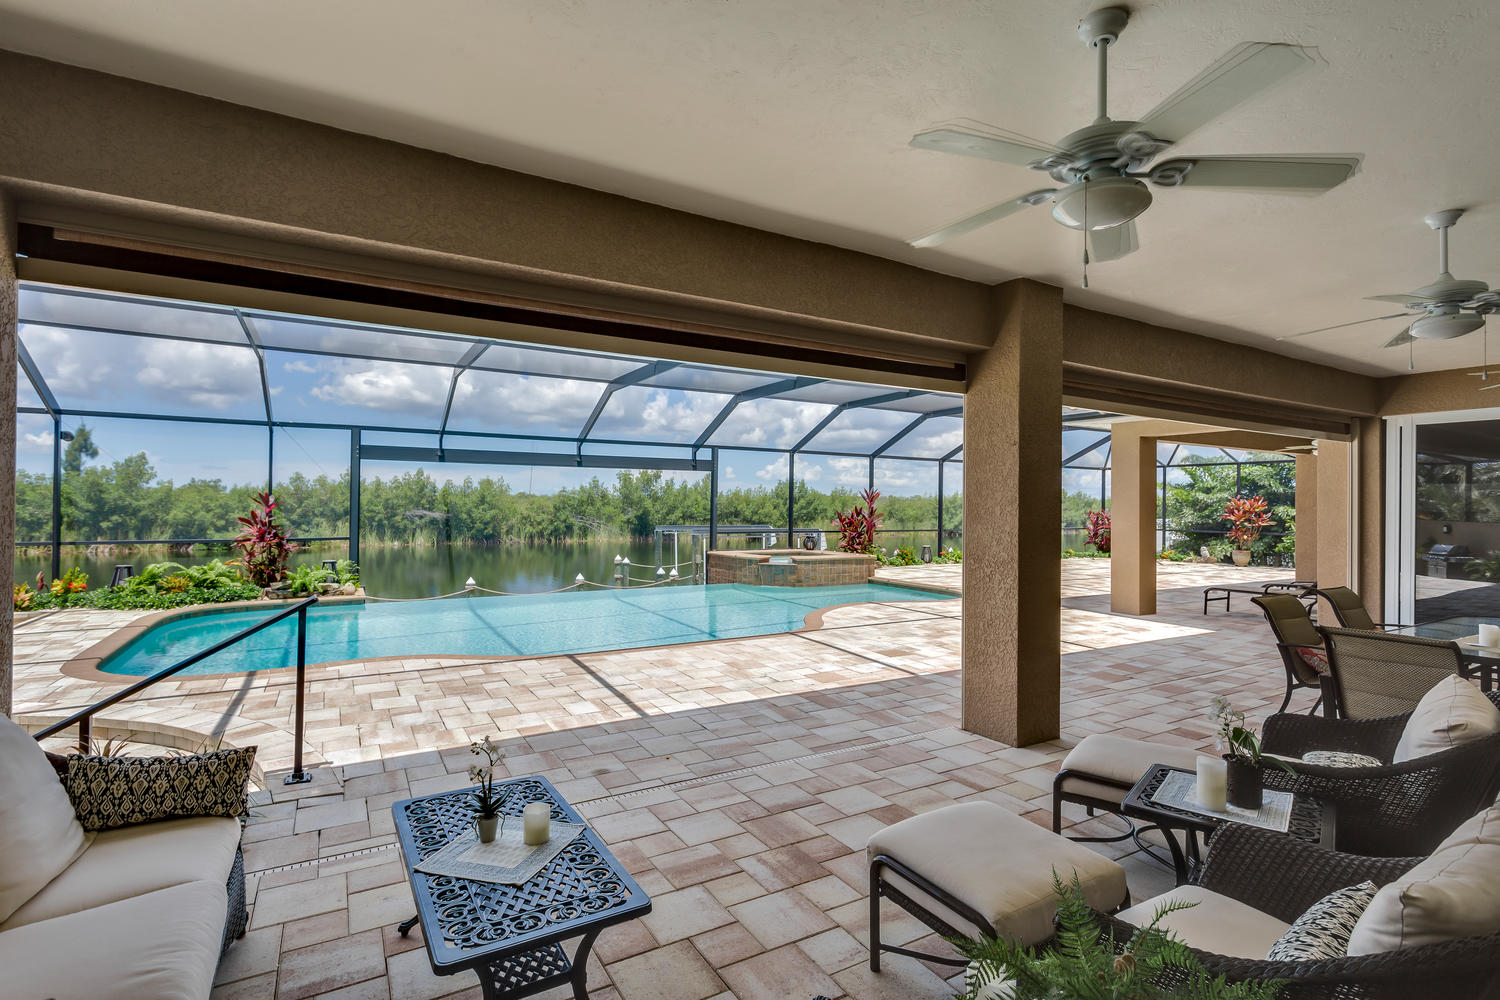 Pool und Outdoor Area in Florida